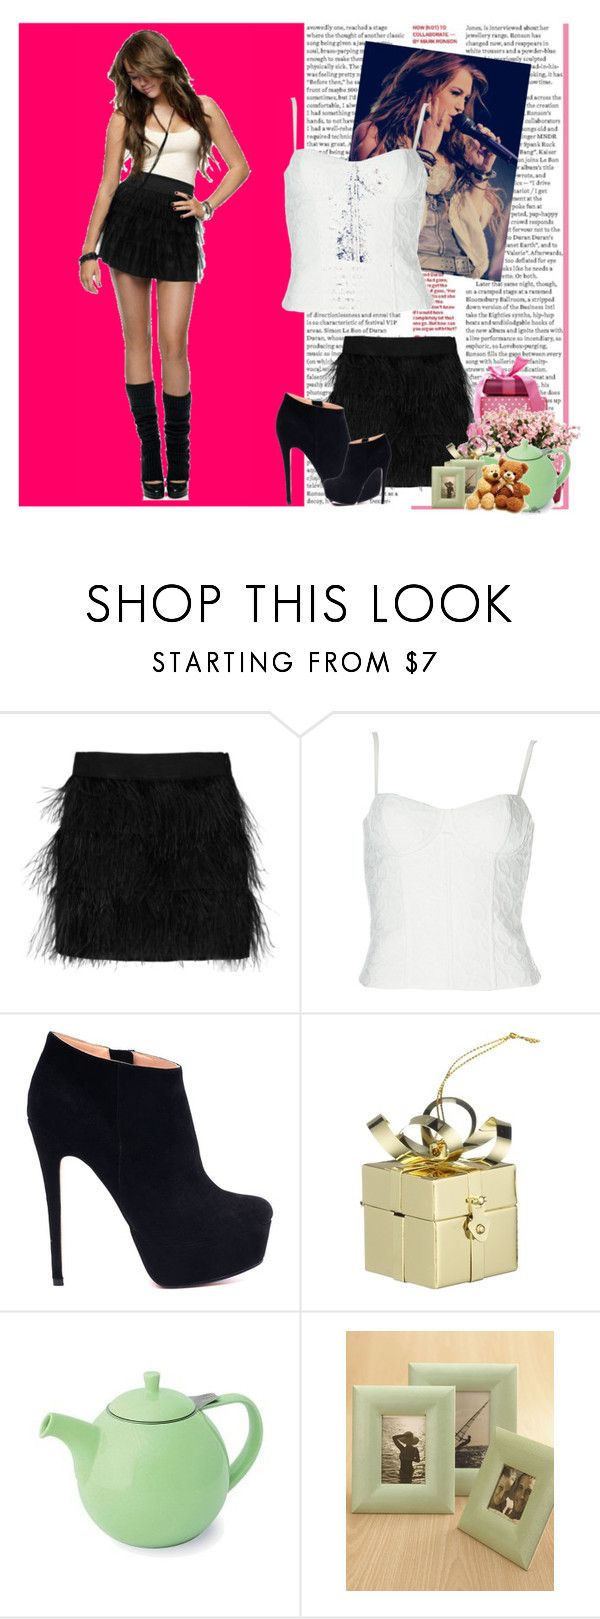 """Miley Cyrus*-*"" by otrajorgelis ❤ liked on Polyvore featuring Max Azria, Cyrus, Milly, Alice + Olivia and John Lewis"